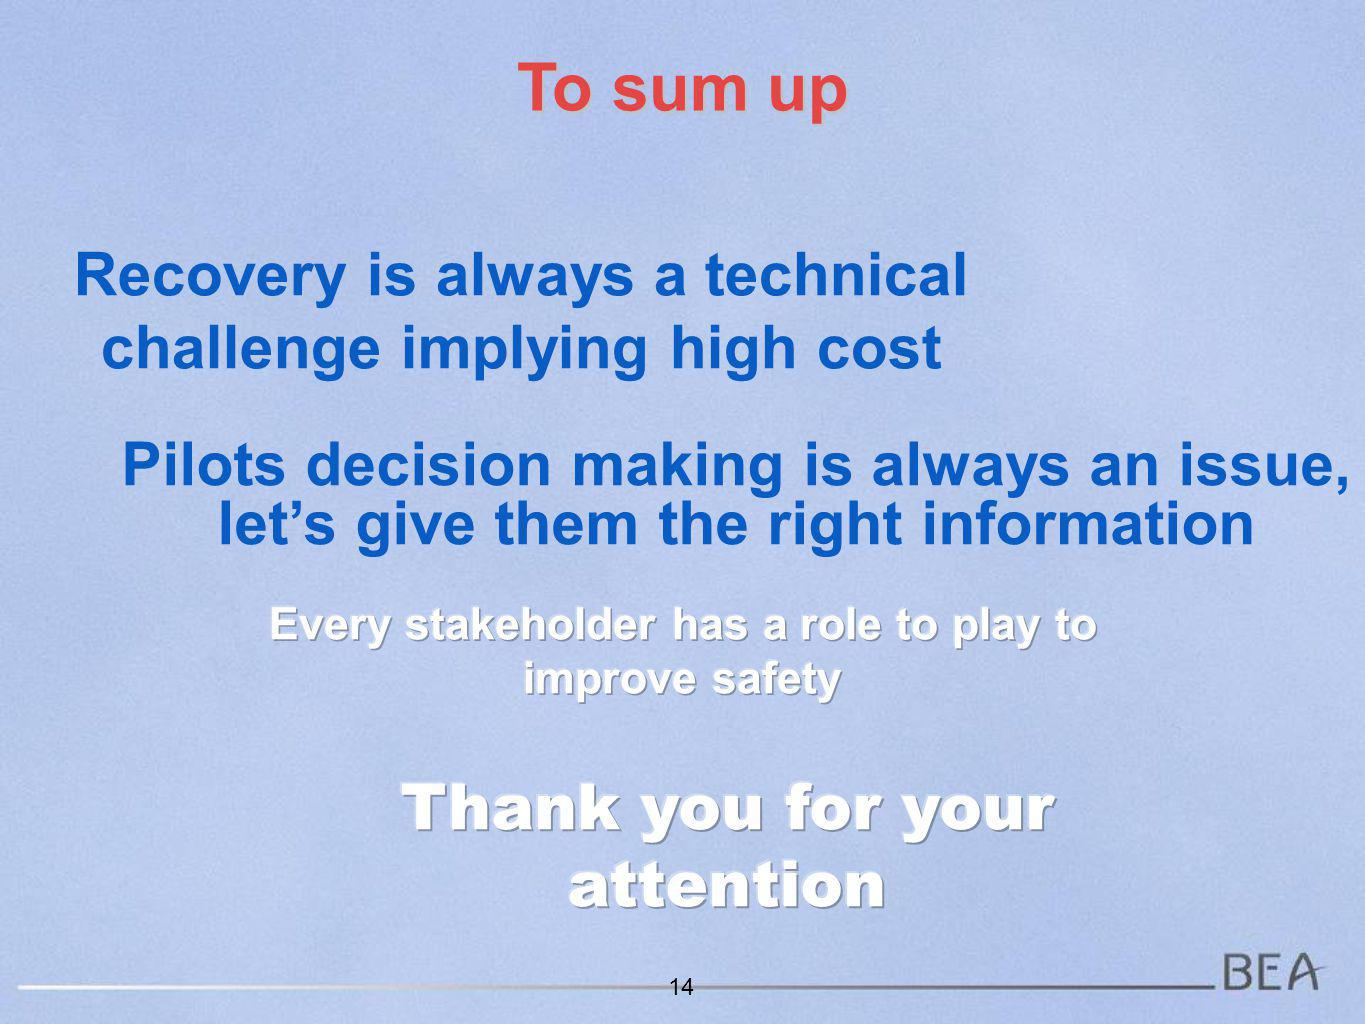 Recovery is always a technical challenge implying high cost 14 To sum up Pilots decision making is always an issue, lets give them the right information